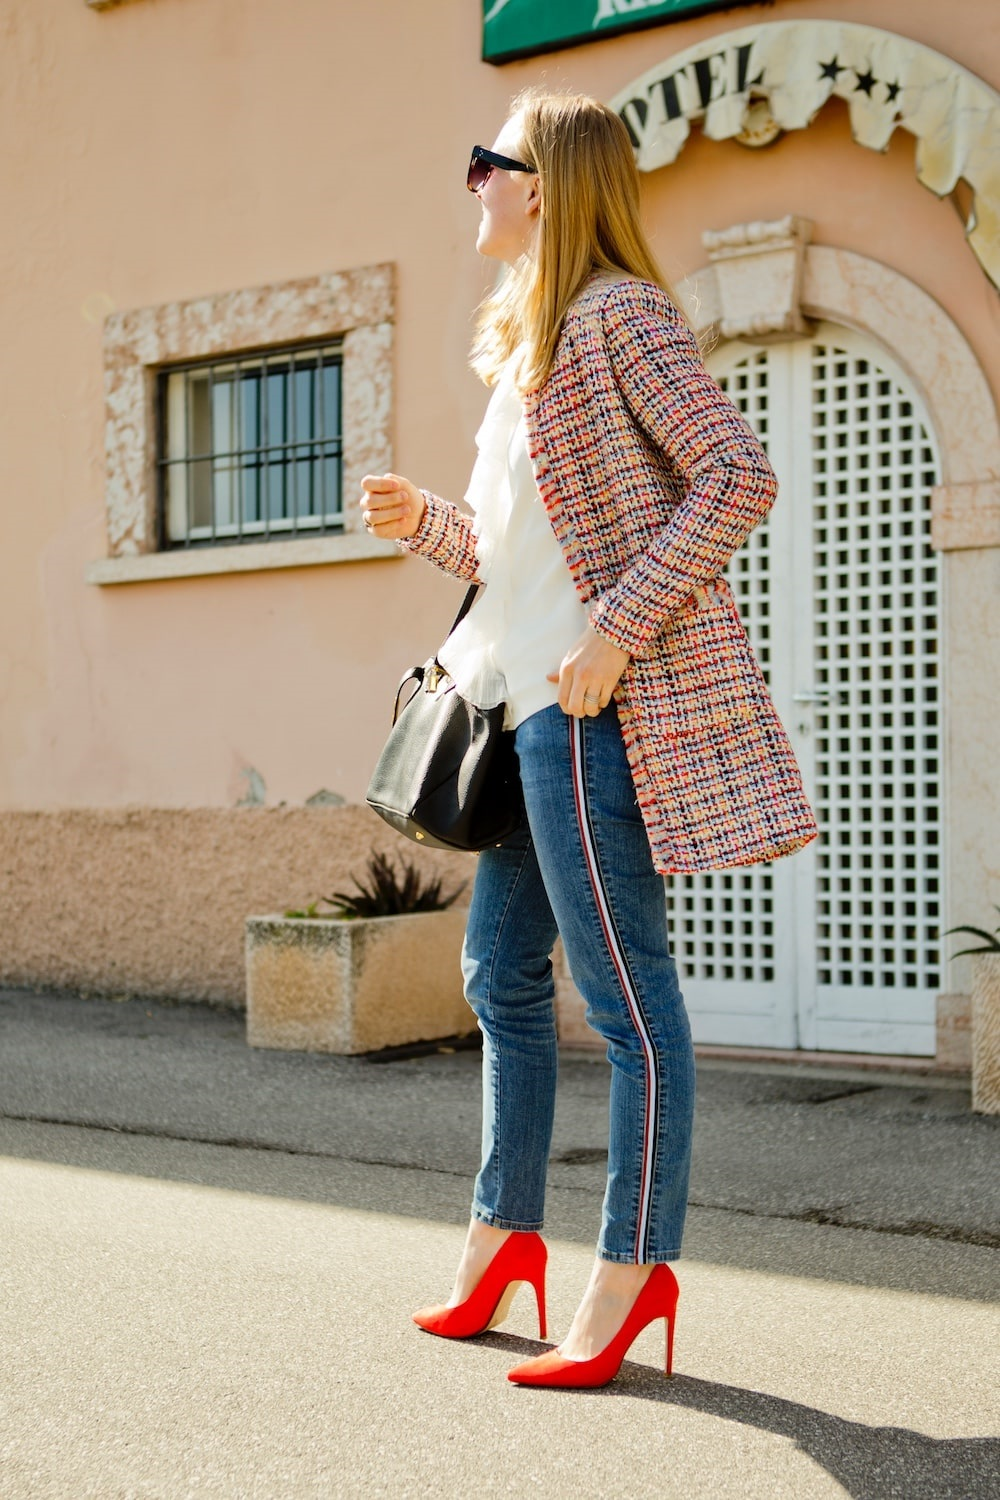 Fall 2018 Fashion Staples, denim with side stripes, jeans with side stripes, red pumps, tweed jacket